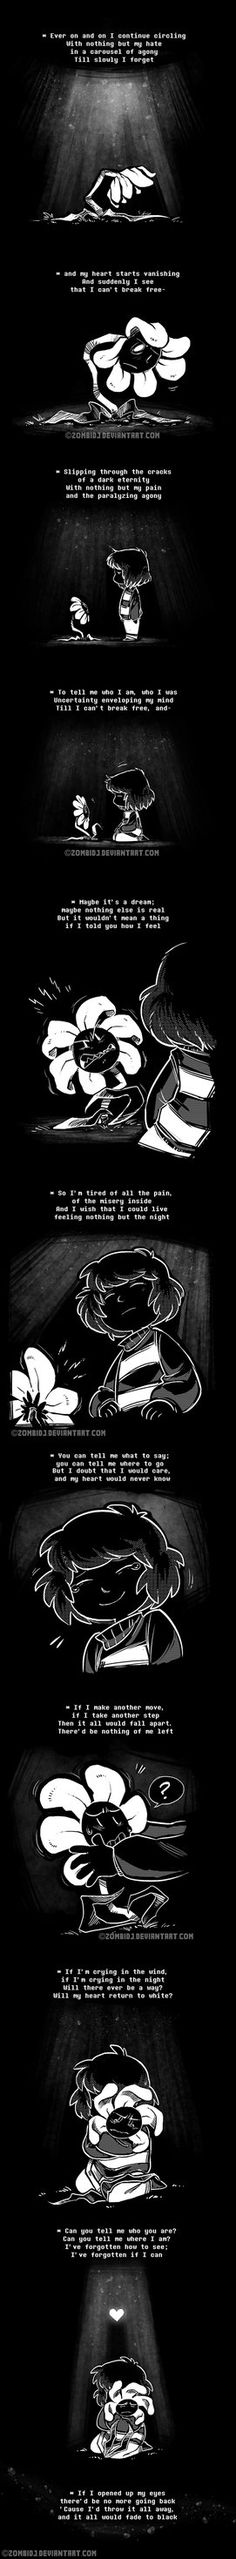 Undertale - Bad Flowey by ZombiDJ on DeviantArt